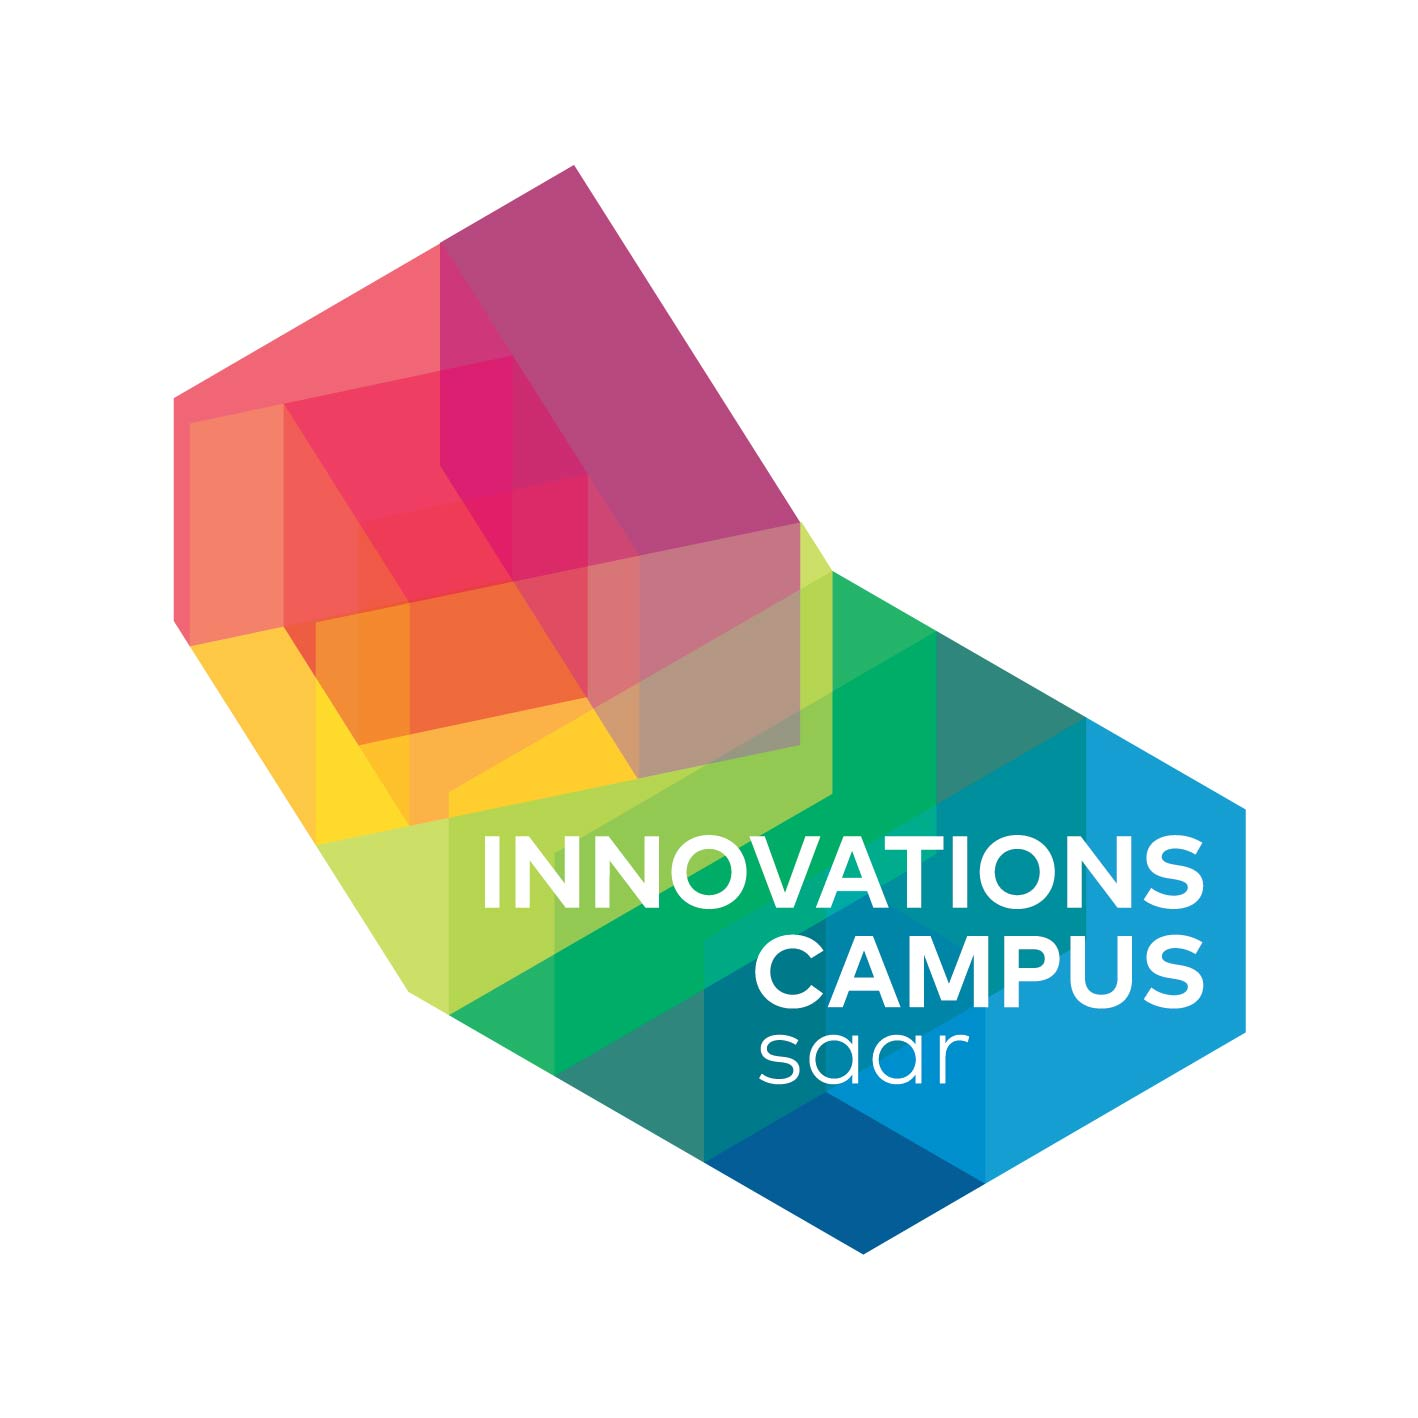 InnovationsCampus saar